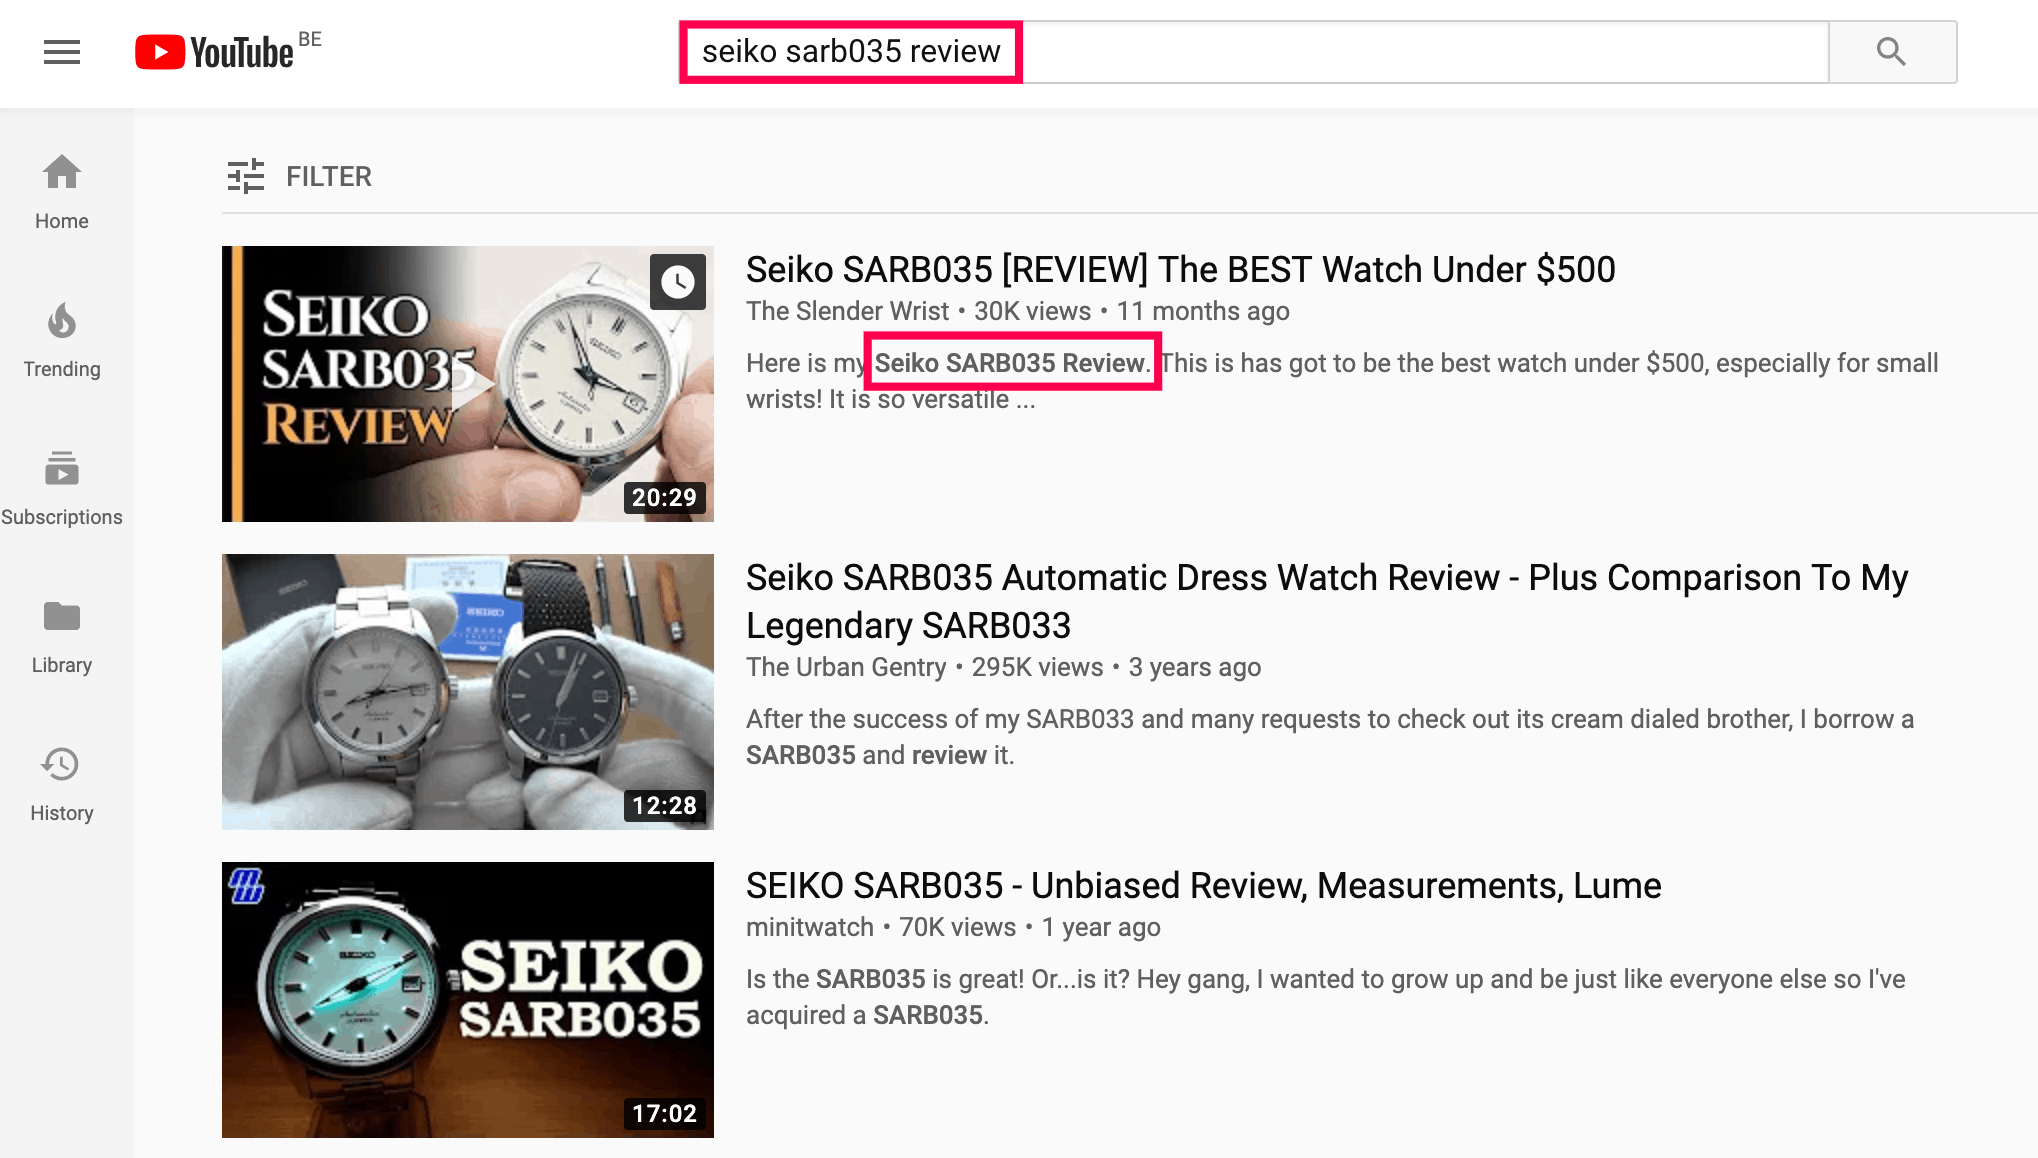 target keyword in first sentence of video description